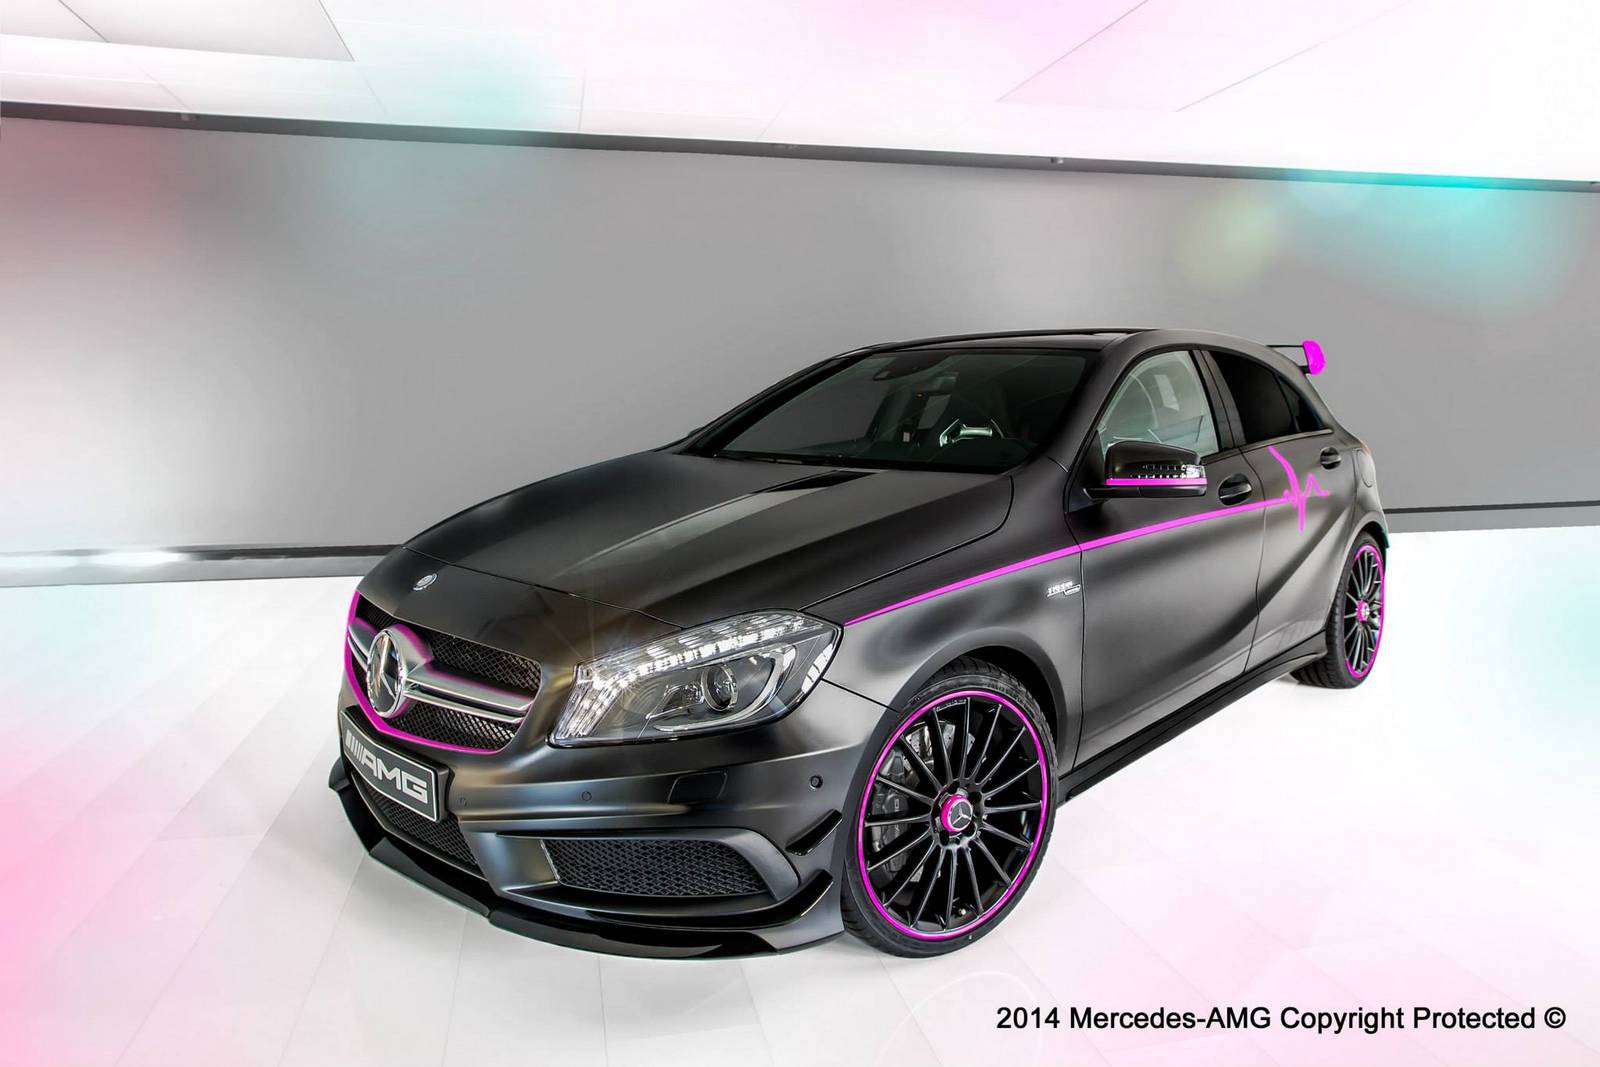 mercedes benz a 45 amg erika by amg performance studio gtspirit. Black Bedroom Furniture Sets. Home Design Ideas